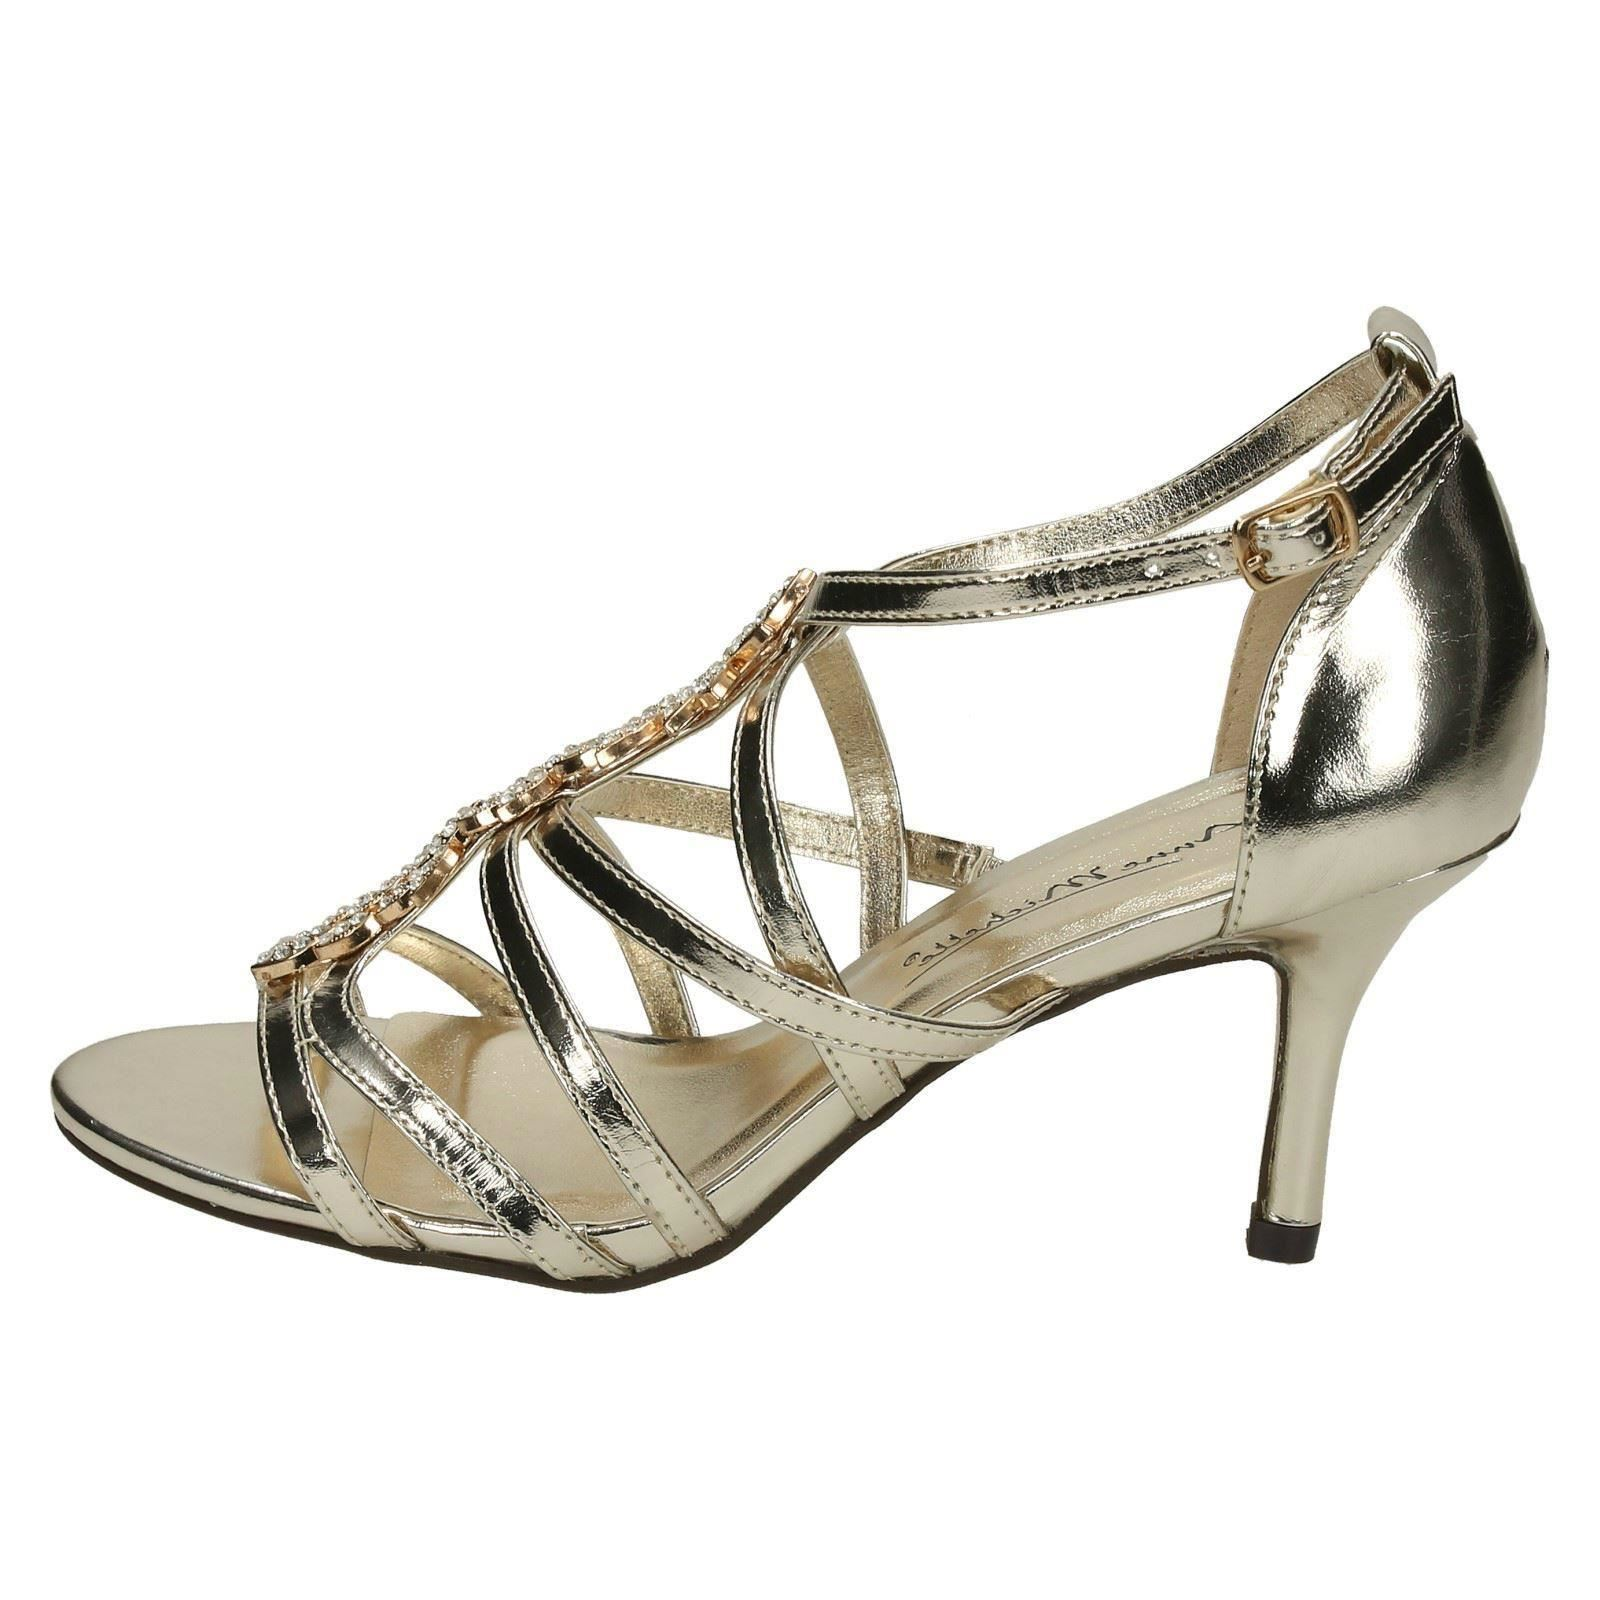 58e9a187fce Ladies Anne Michelle Mid Heel Strappy Sandals F10582 Gold UK 3 Standard.  About this product. Picture 1 of 10  Picture 2 of 10  Picture 3 of 10 ...